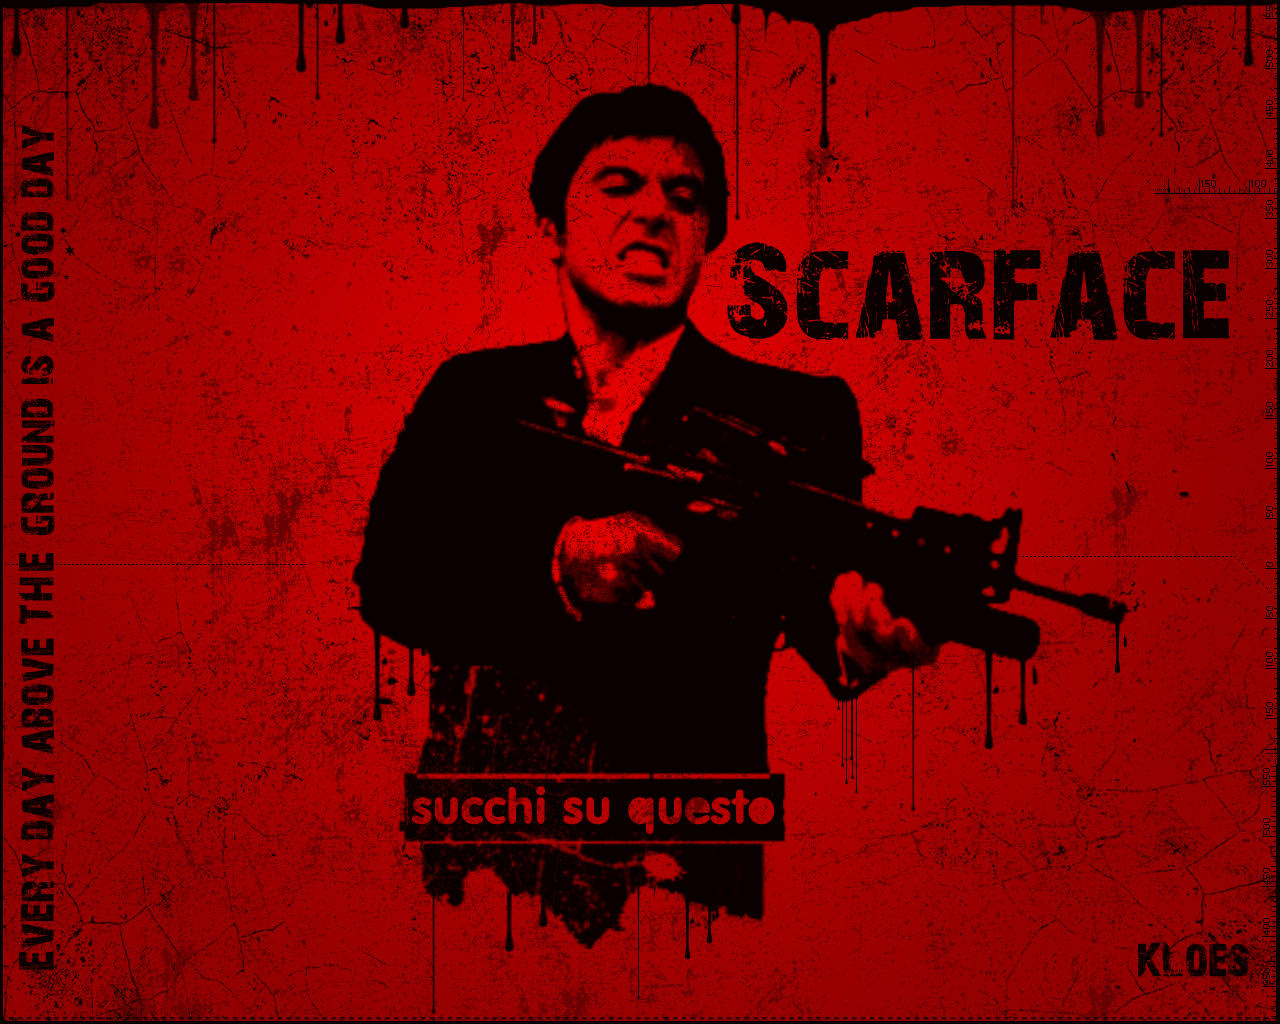 Scarface Wallpaper by Kloes on DeviantArt